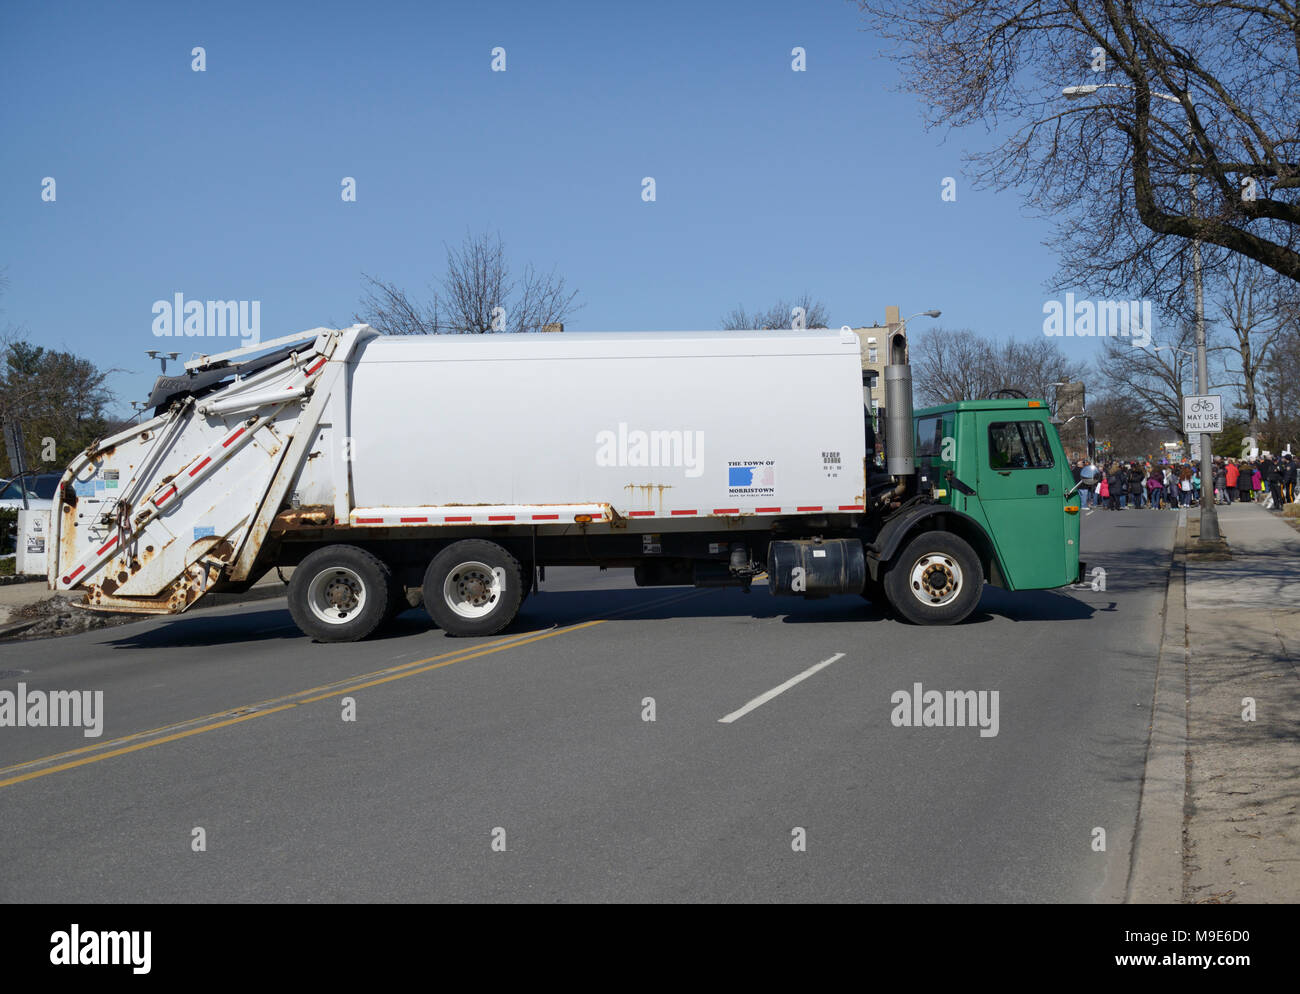 Garbage truck used to block off area to prevent terrorist attack by vehicle during a public march, NJ - Stock Image